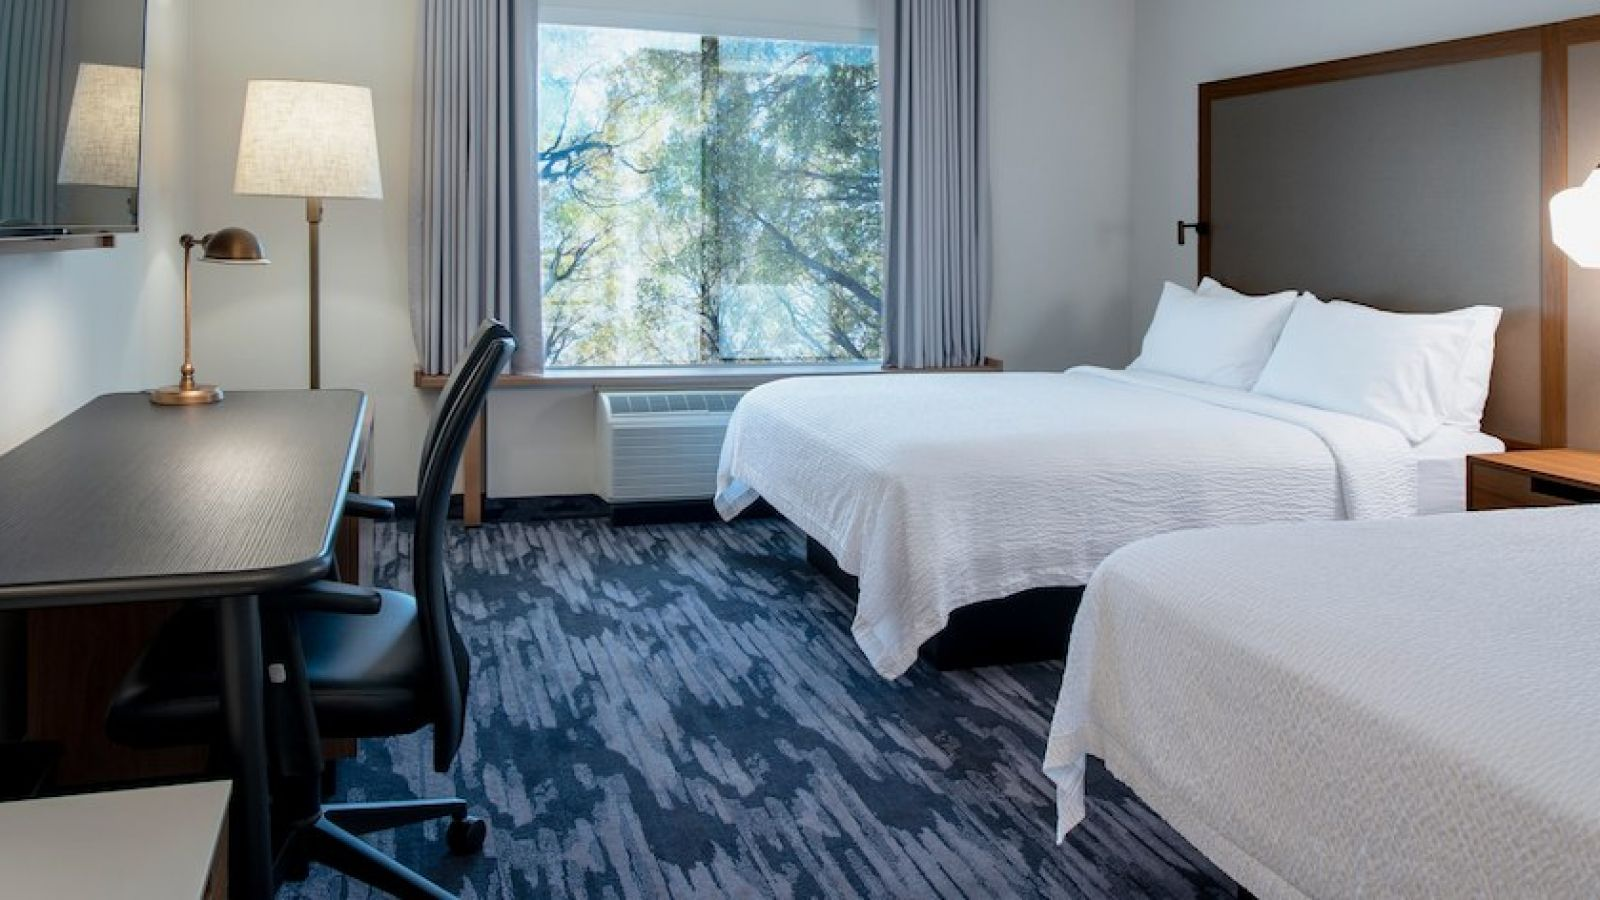 Our newly renovated queen/queen guest room features complimentary Wi-Fi, a large flat-screen TV and a functional work space